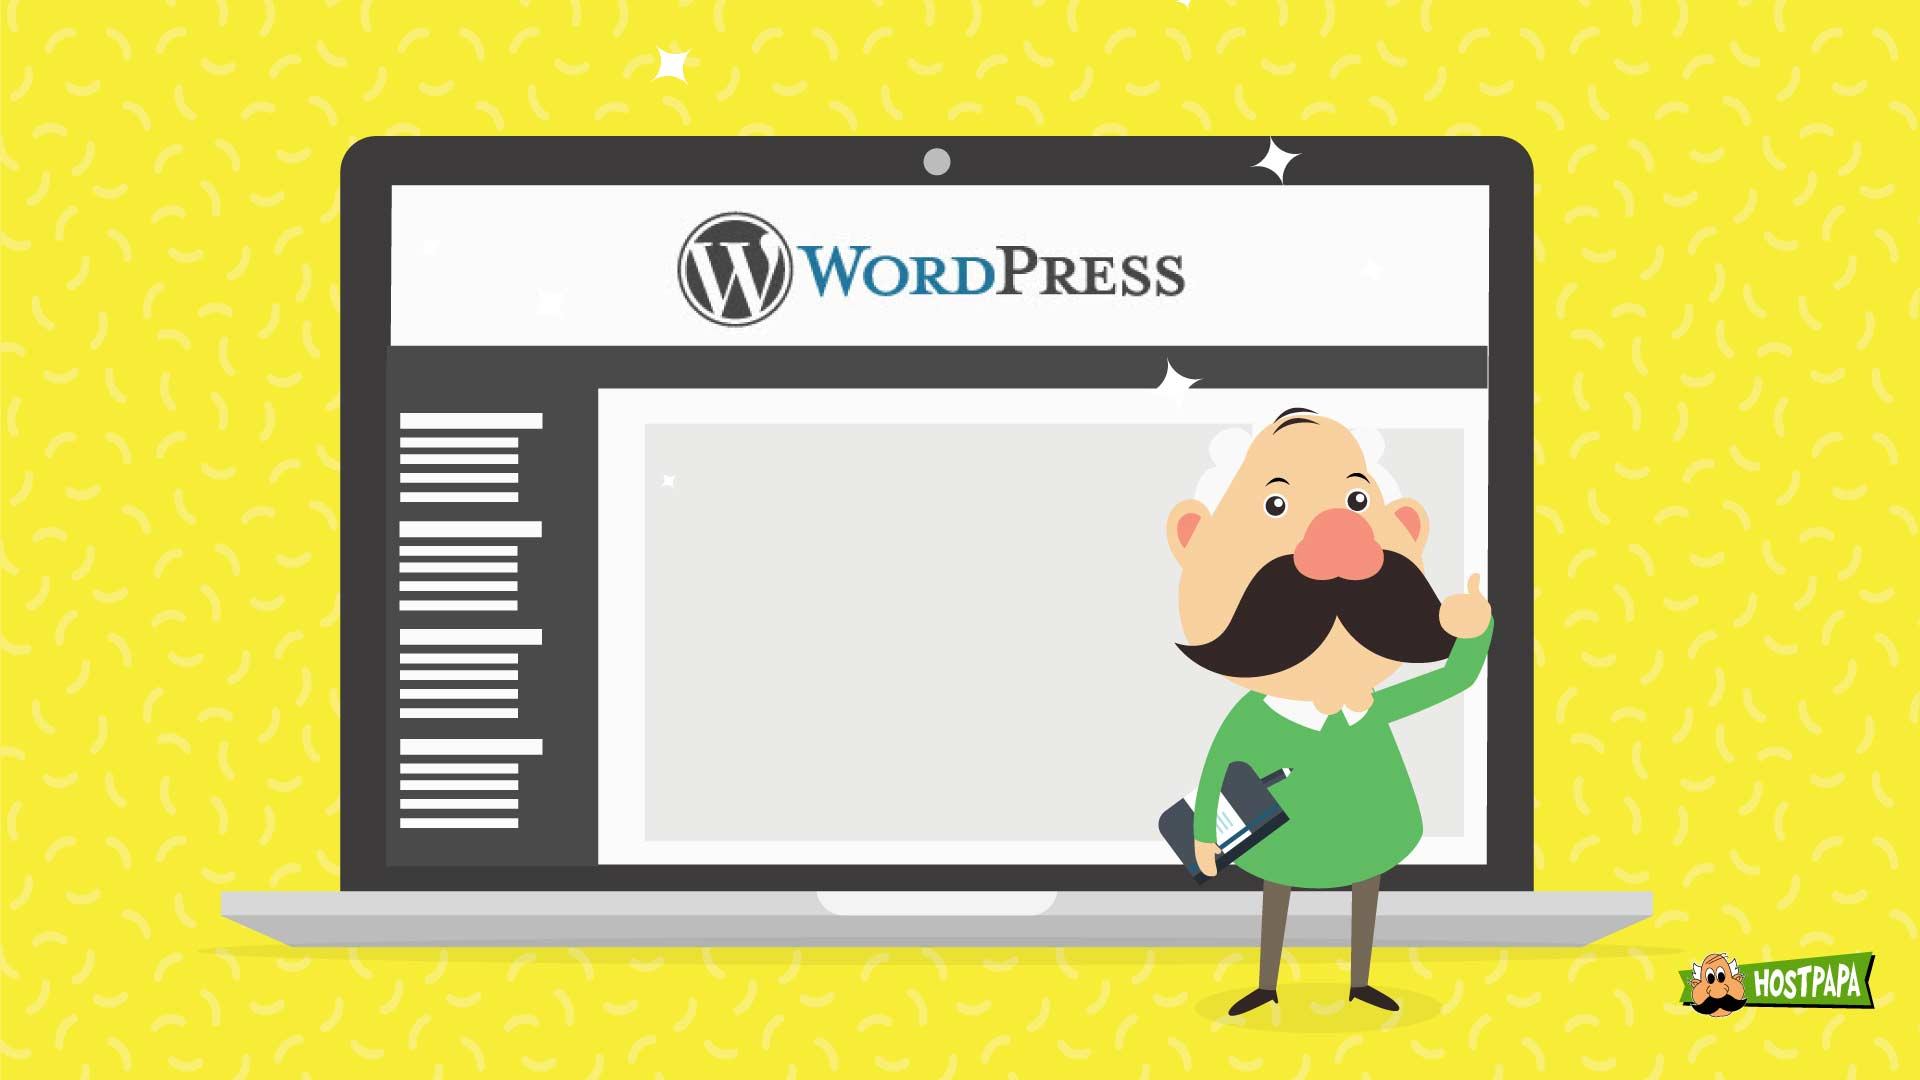 How To Set Up WordPress: A Beginner's Guide